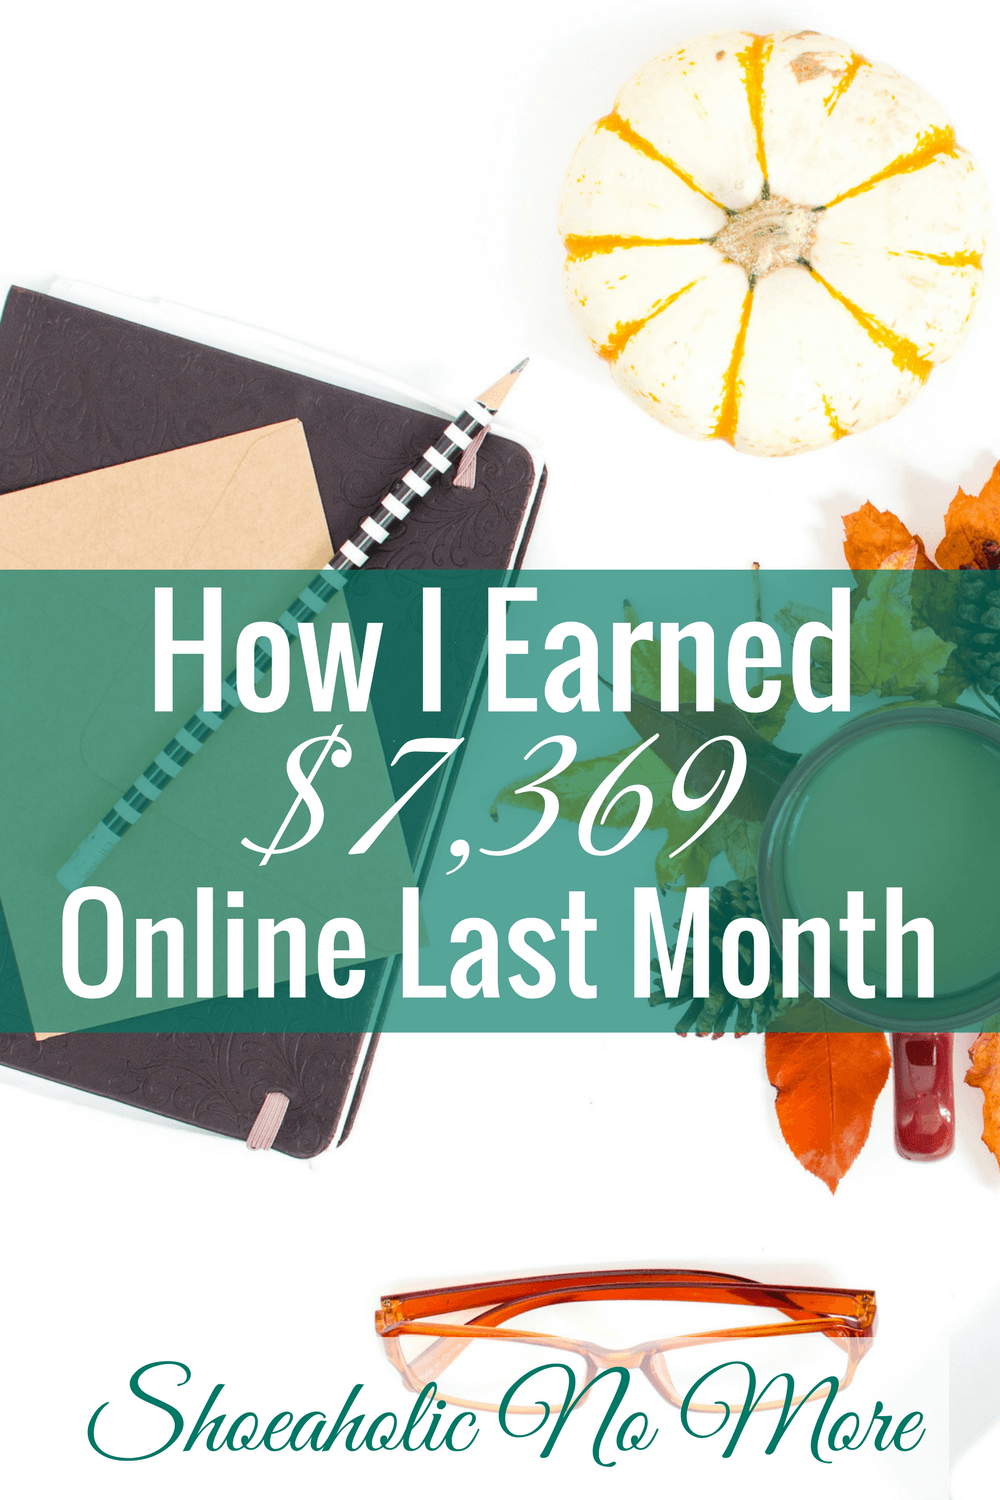 Wow! I can't believe how this woman earned over $7,000 online last month. It's amazing!